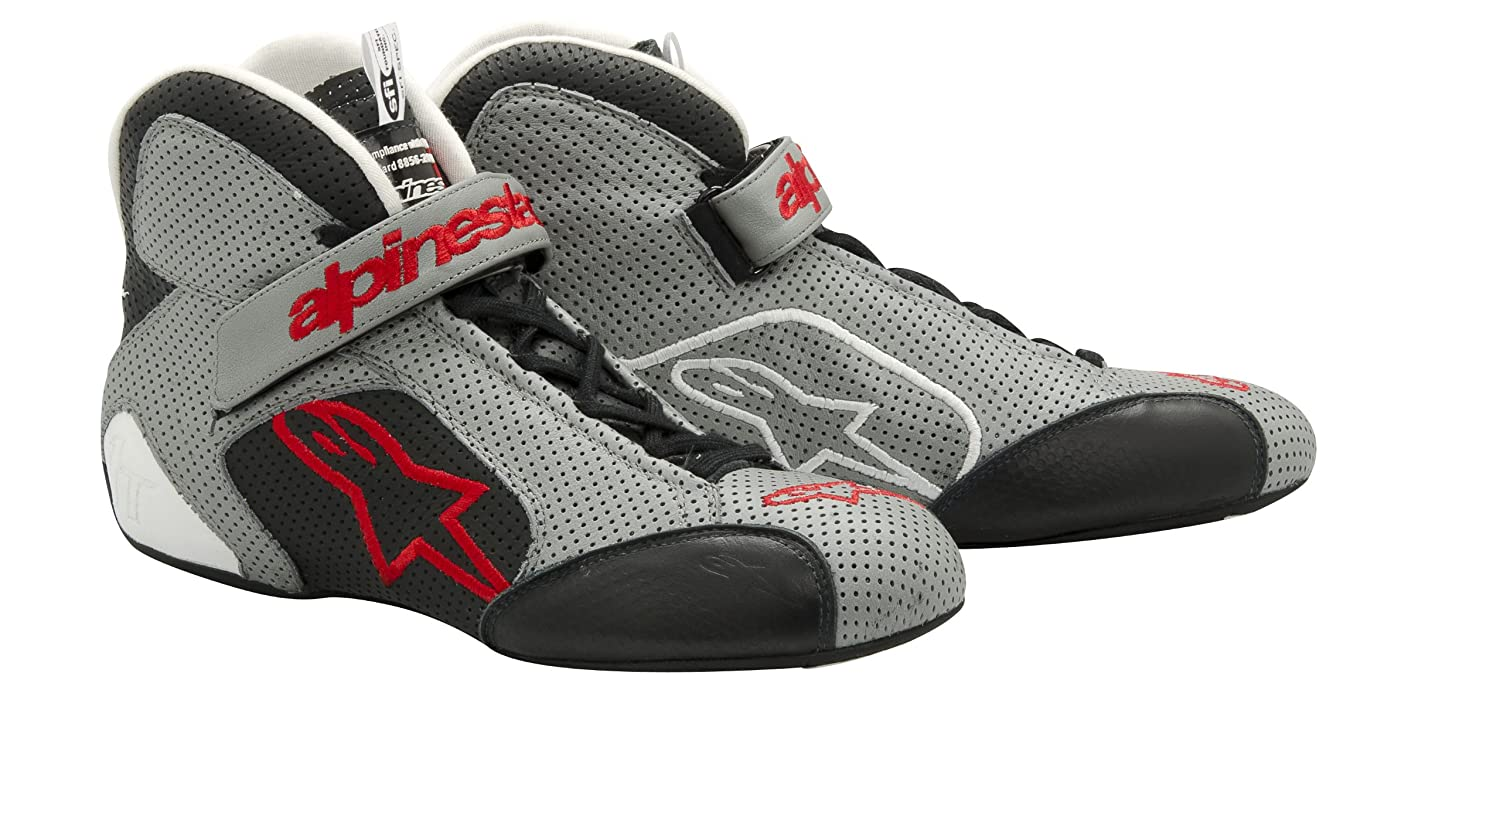 2710112-913-13 Gray//Black//Red Size-13 Tech 1-T Shoes 2710012-GRAY BLACK RED- 13 Alpinestars